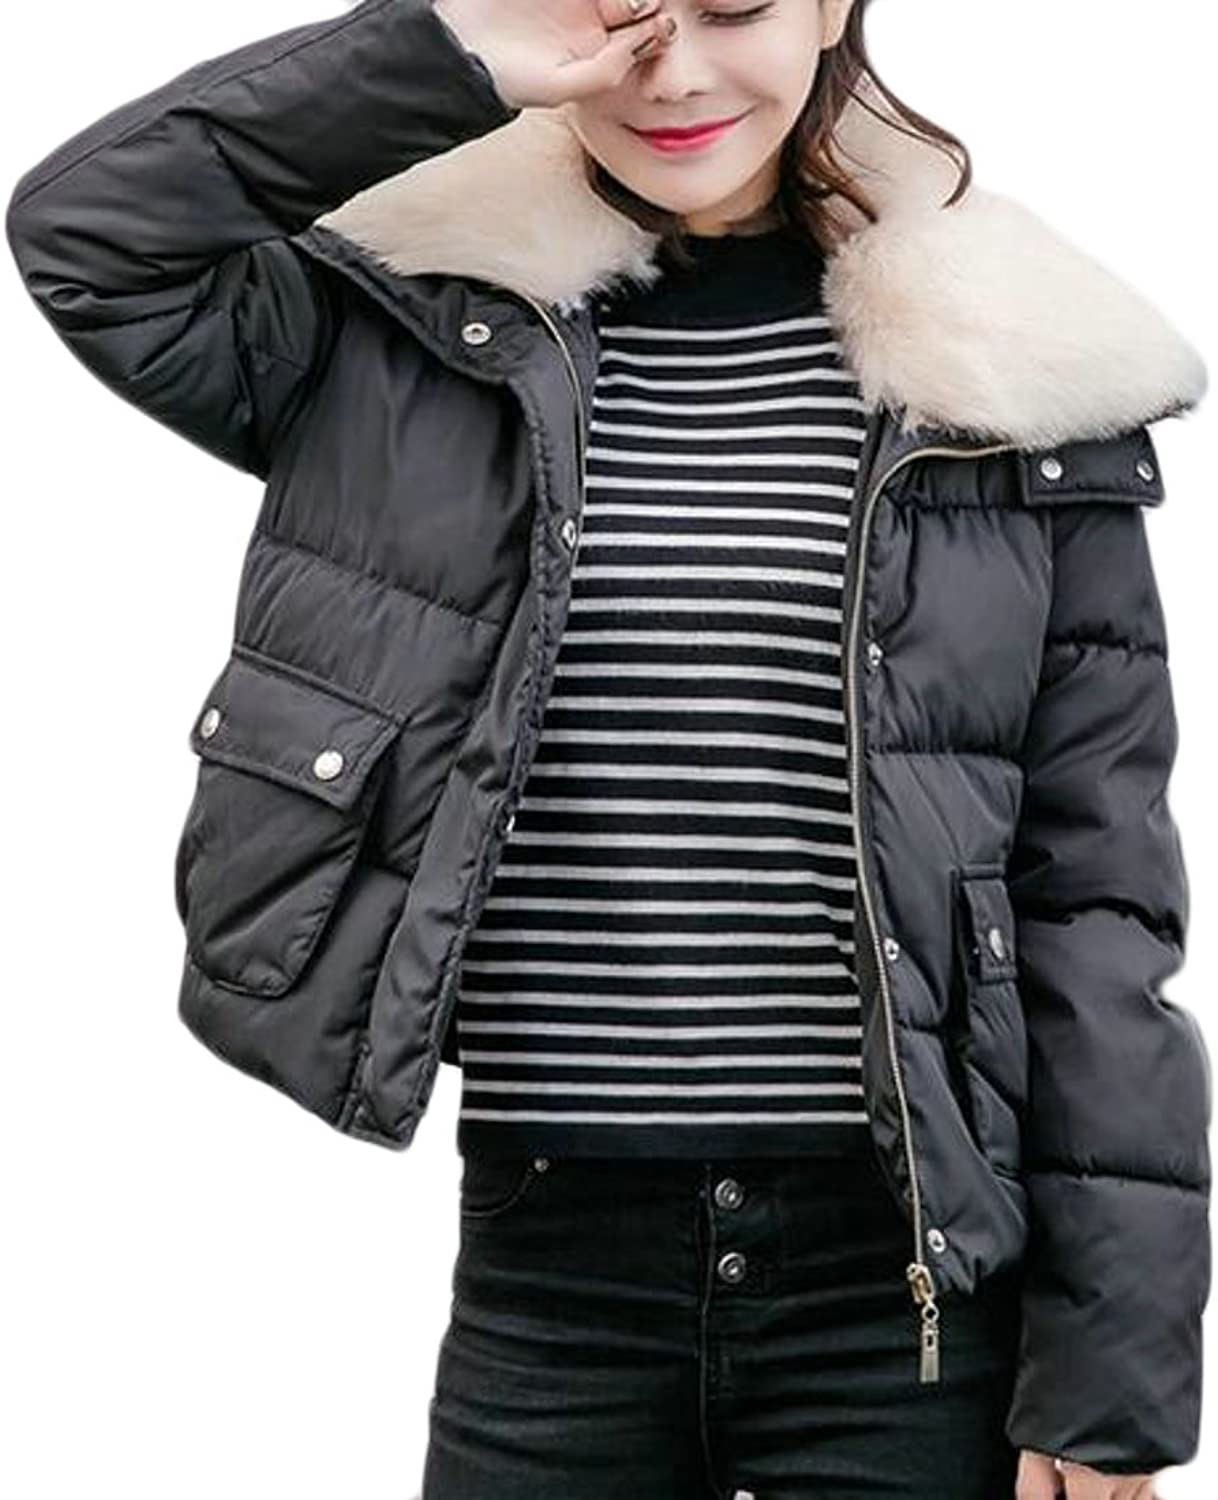 HTOOHTOOH Women's Thickened Down Jacket Warm Faux Fur Collar Winter Short Quilted Coat